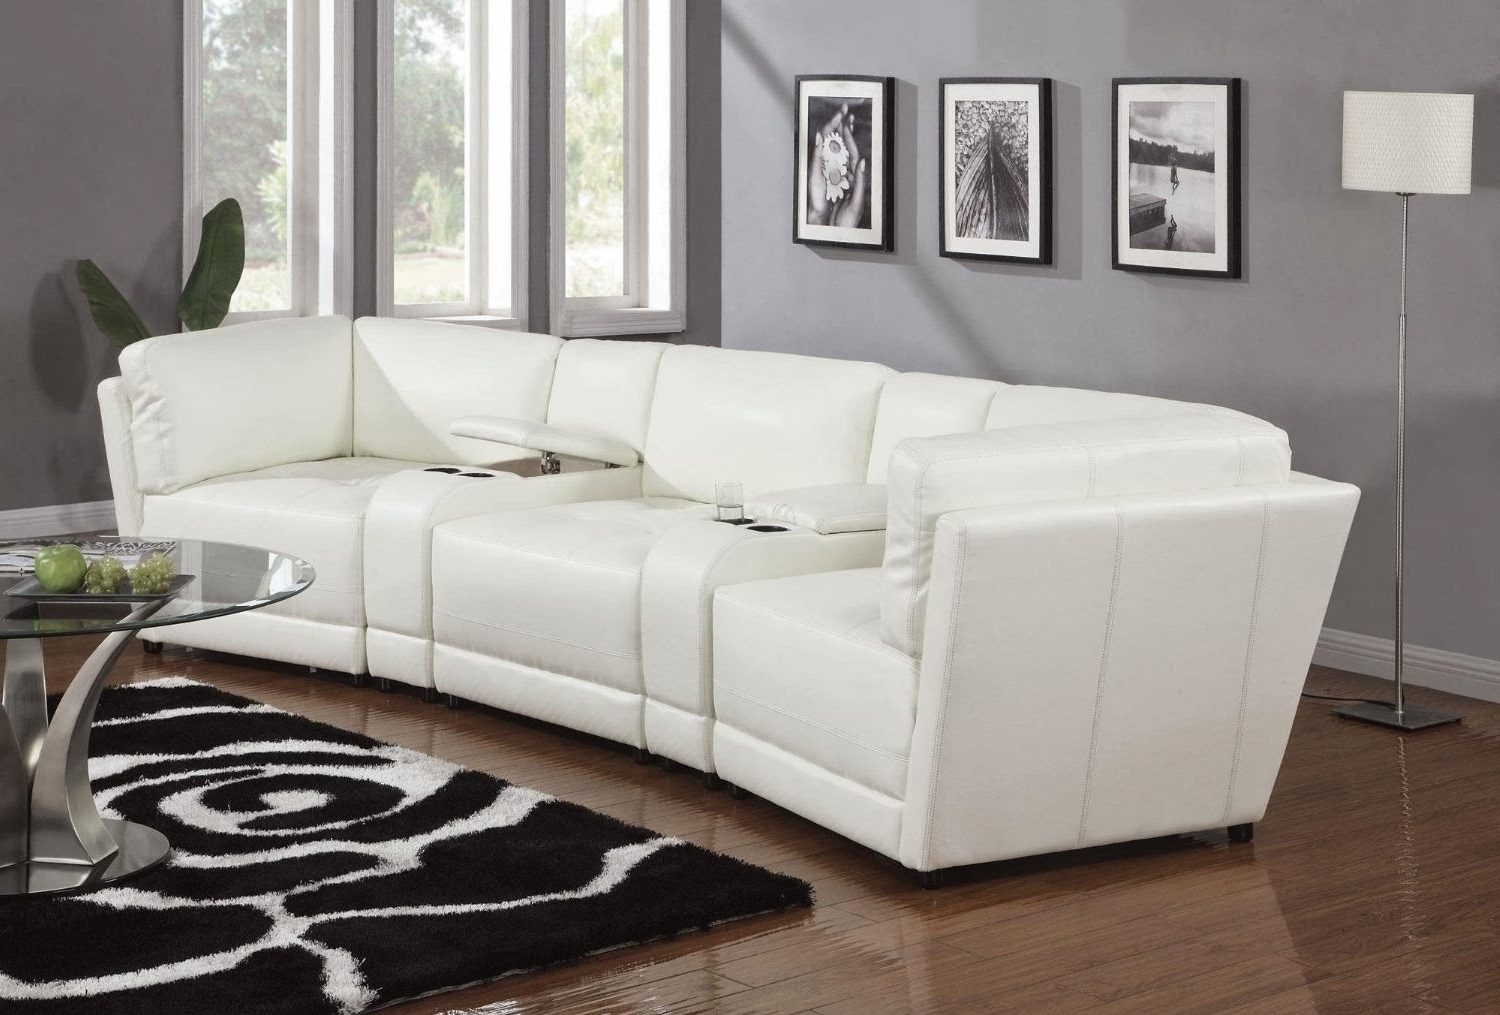 Trendy Sleek Sectional Sofas Regarding Gallery Sleek Sectional Sofas – Mediasupload (View 5 of 20)